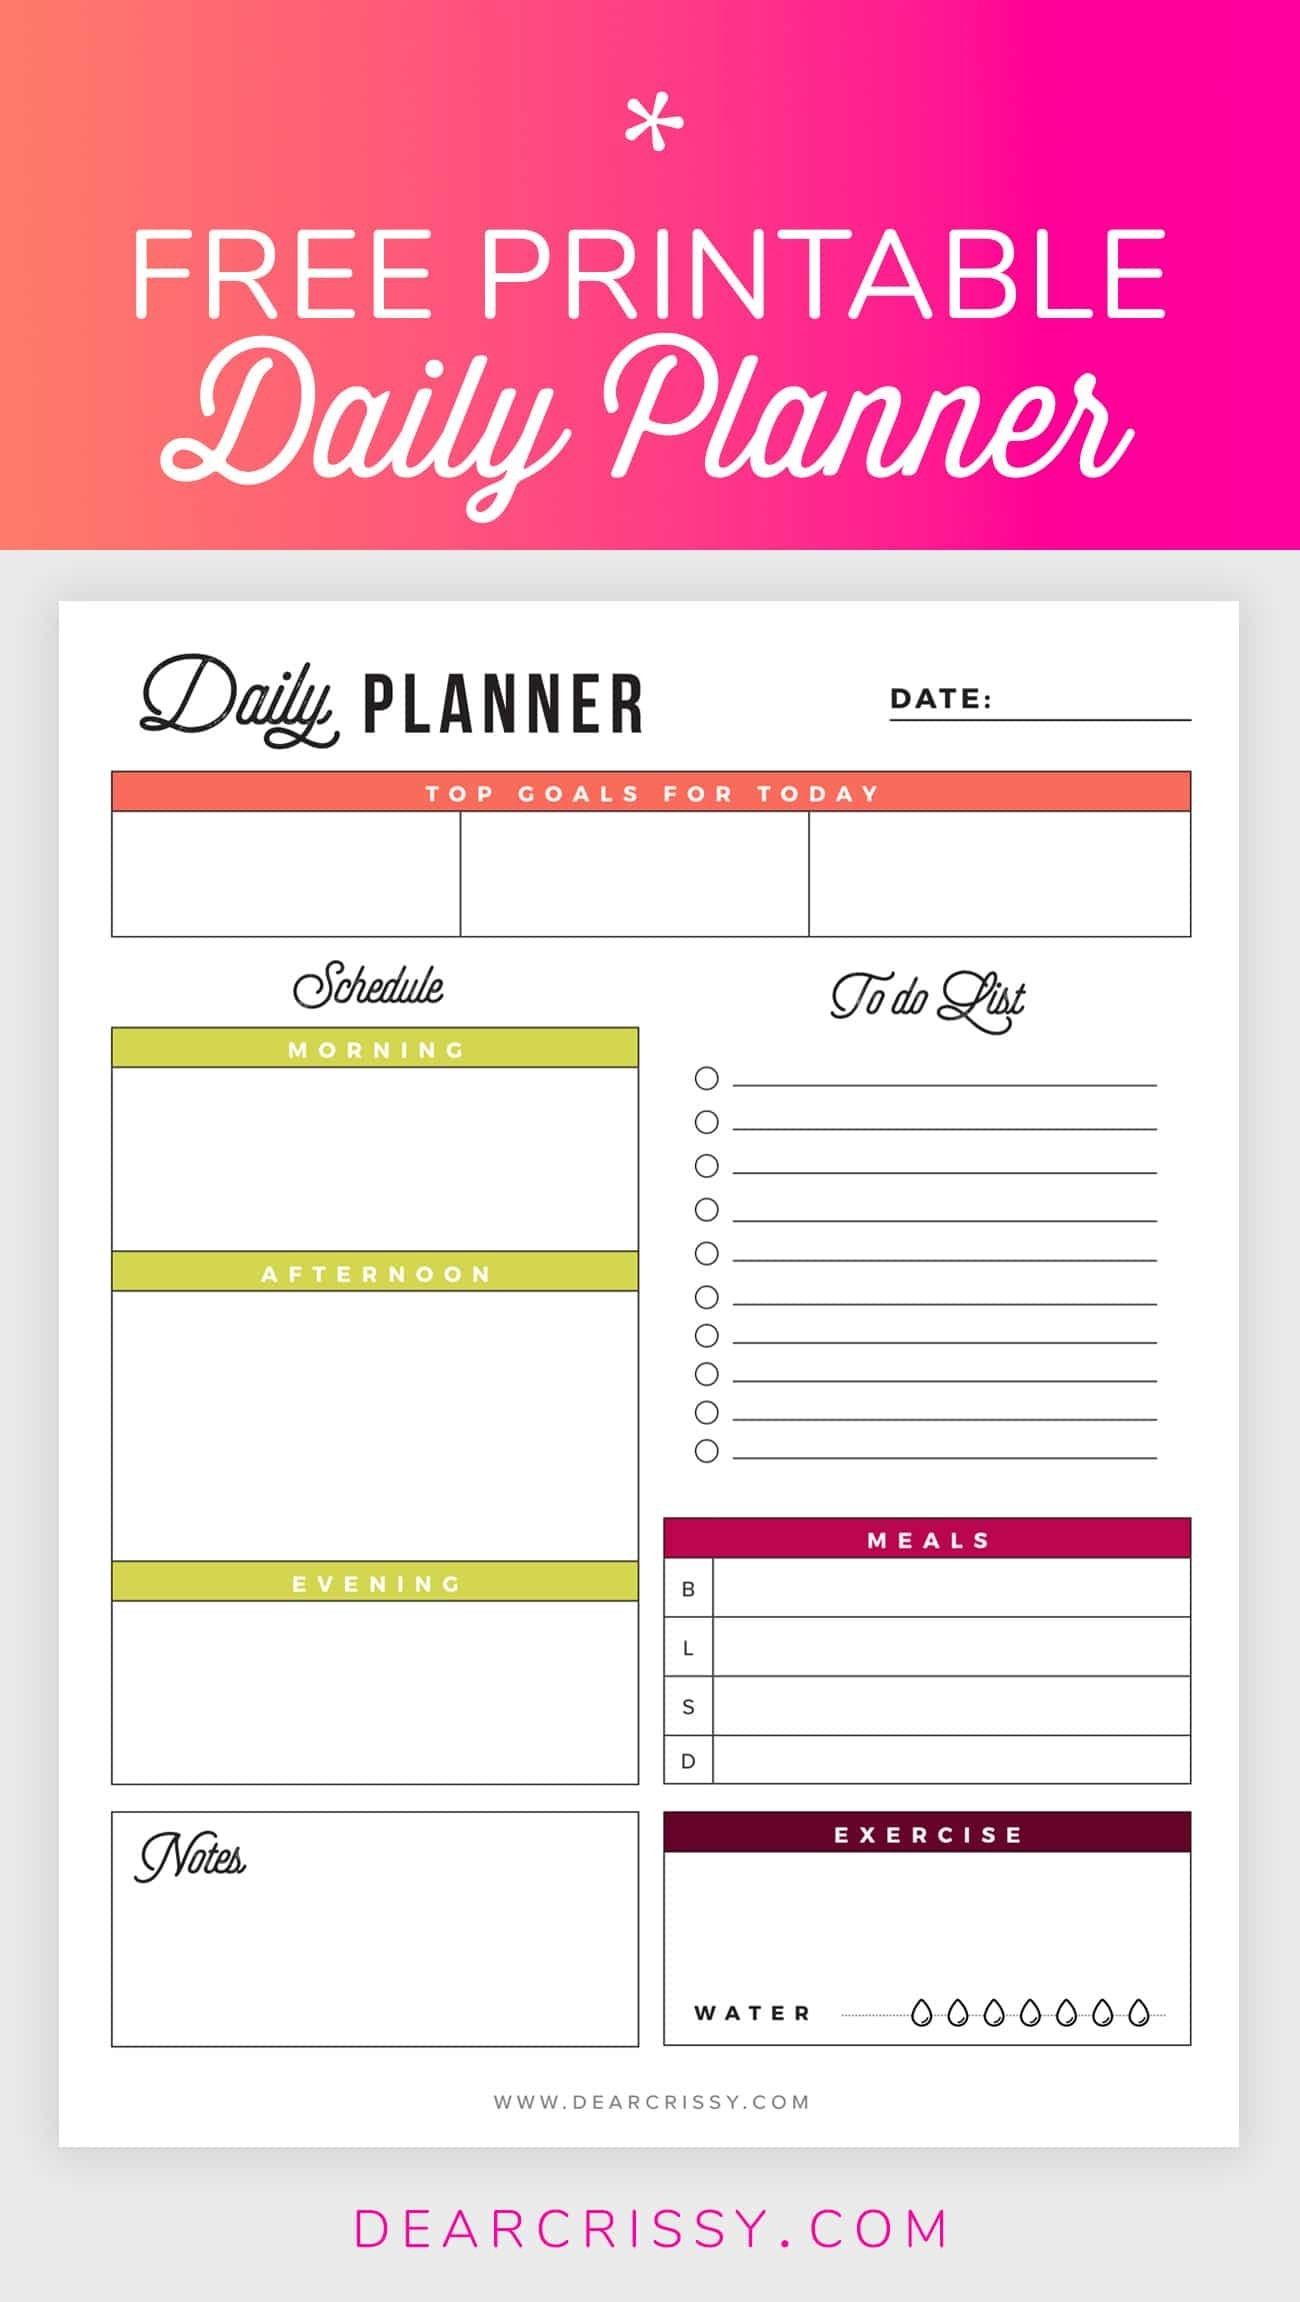 Free Printable Daily Planner - Goals, To-Do, Exercise, Water  Free Printable Daily Schedule